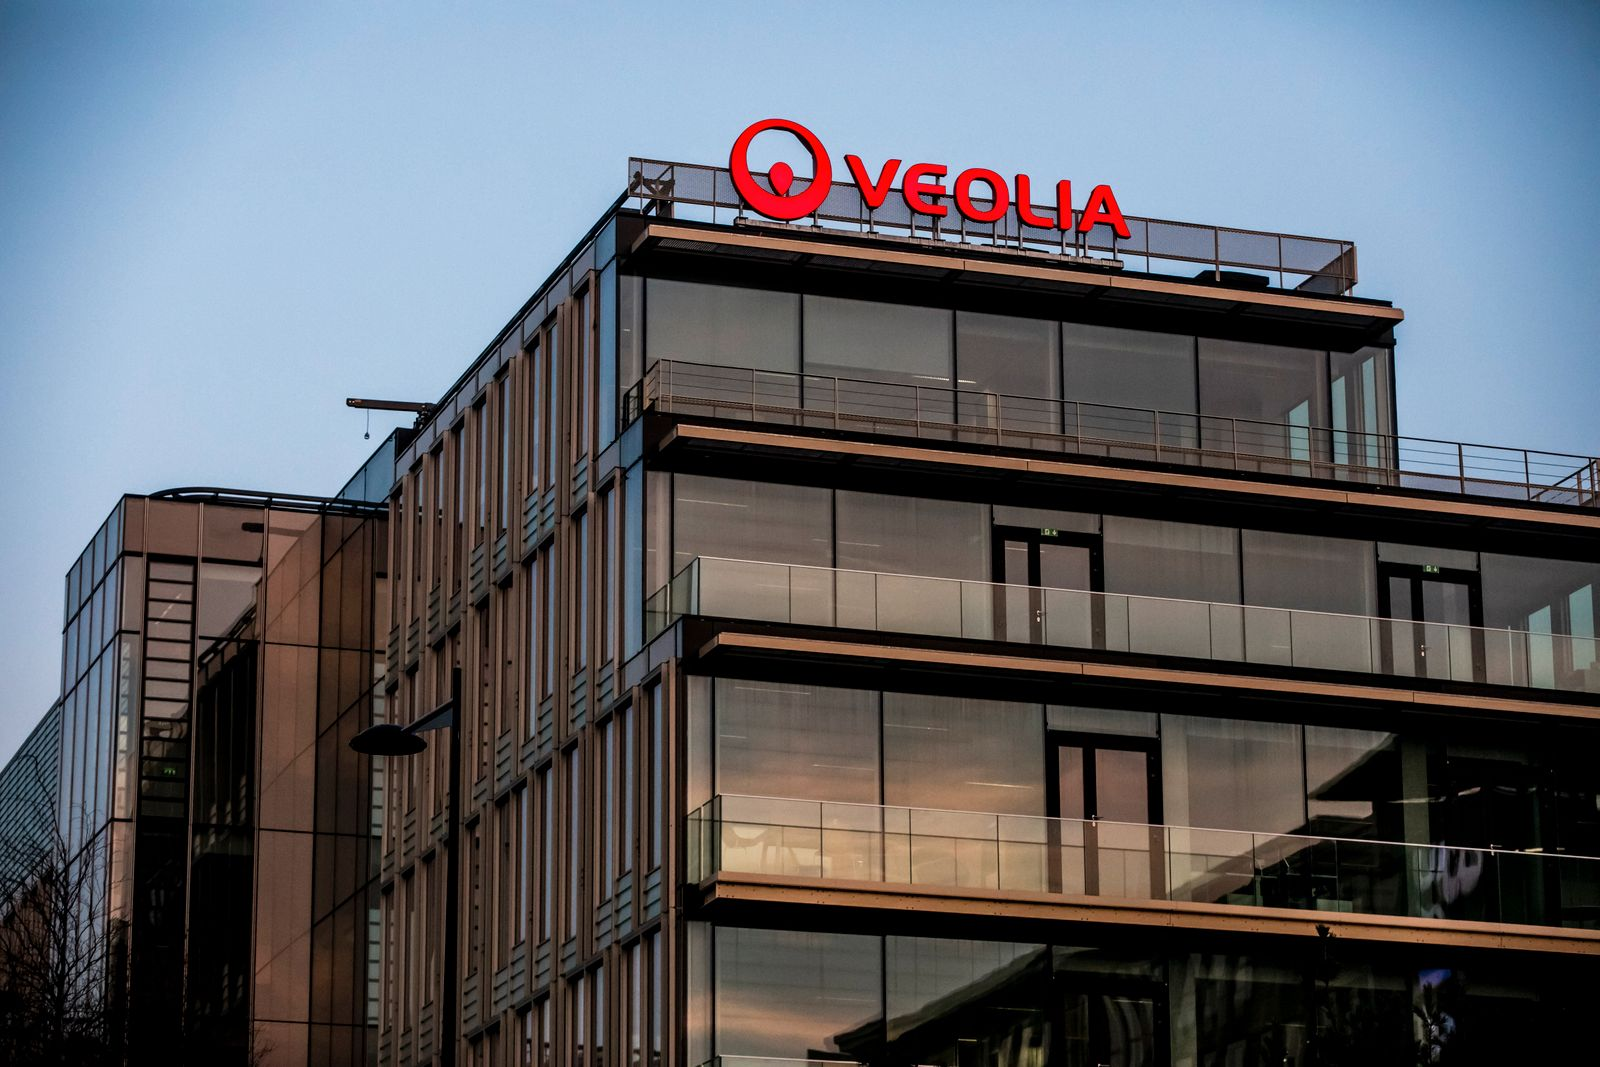 Veolia Unveils Its New Headquaters